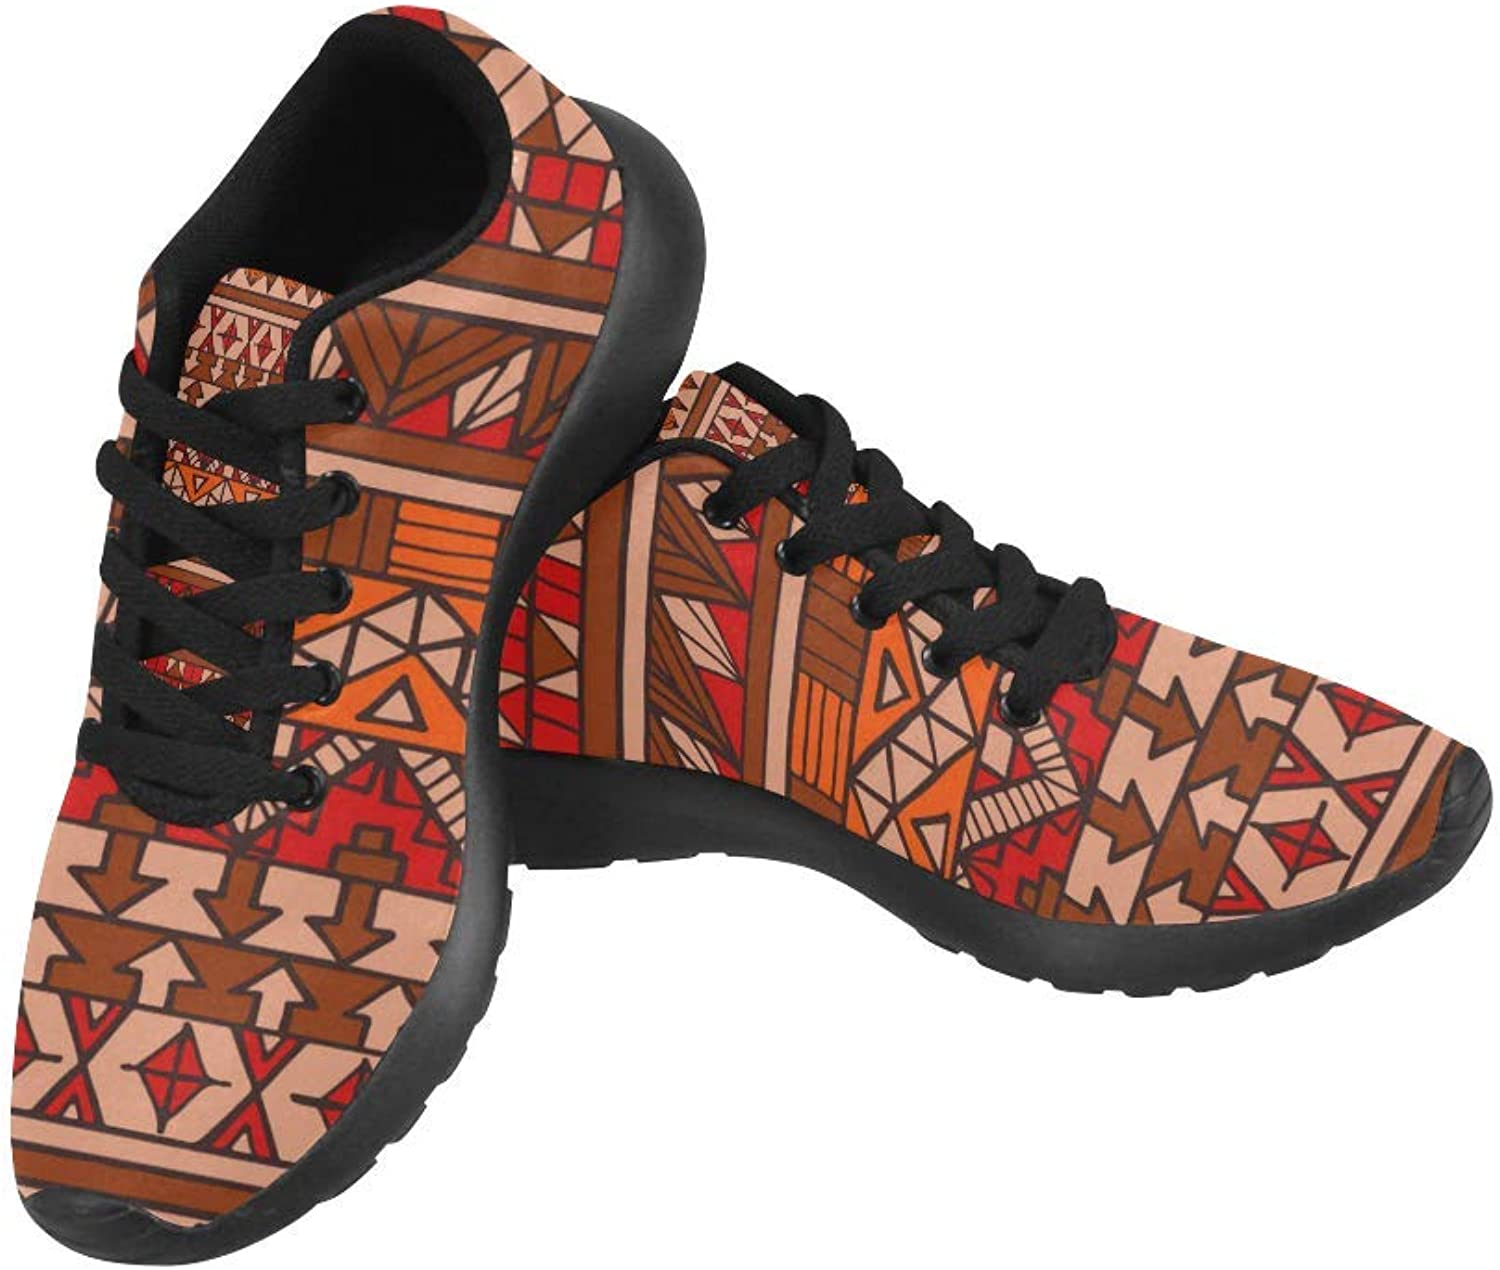 InterestPrint red Abstract Aztec Pattern Print on Women's Running shoes Casual Lightweight Athletic Sneakers US Size 6-15